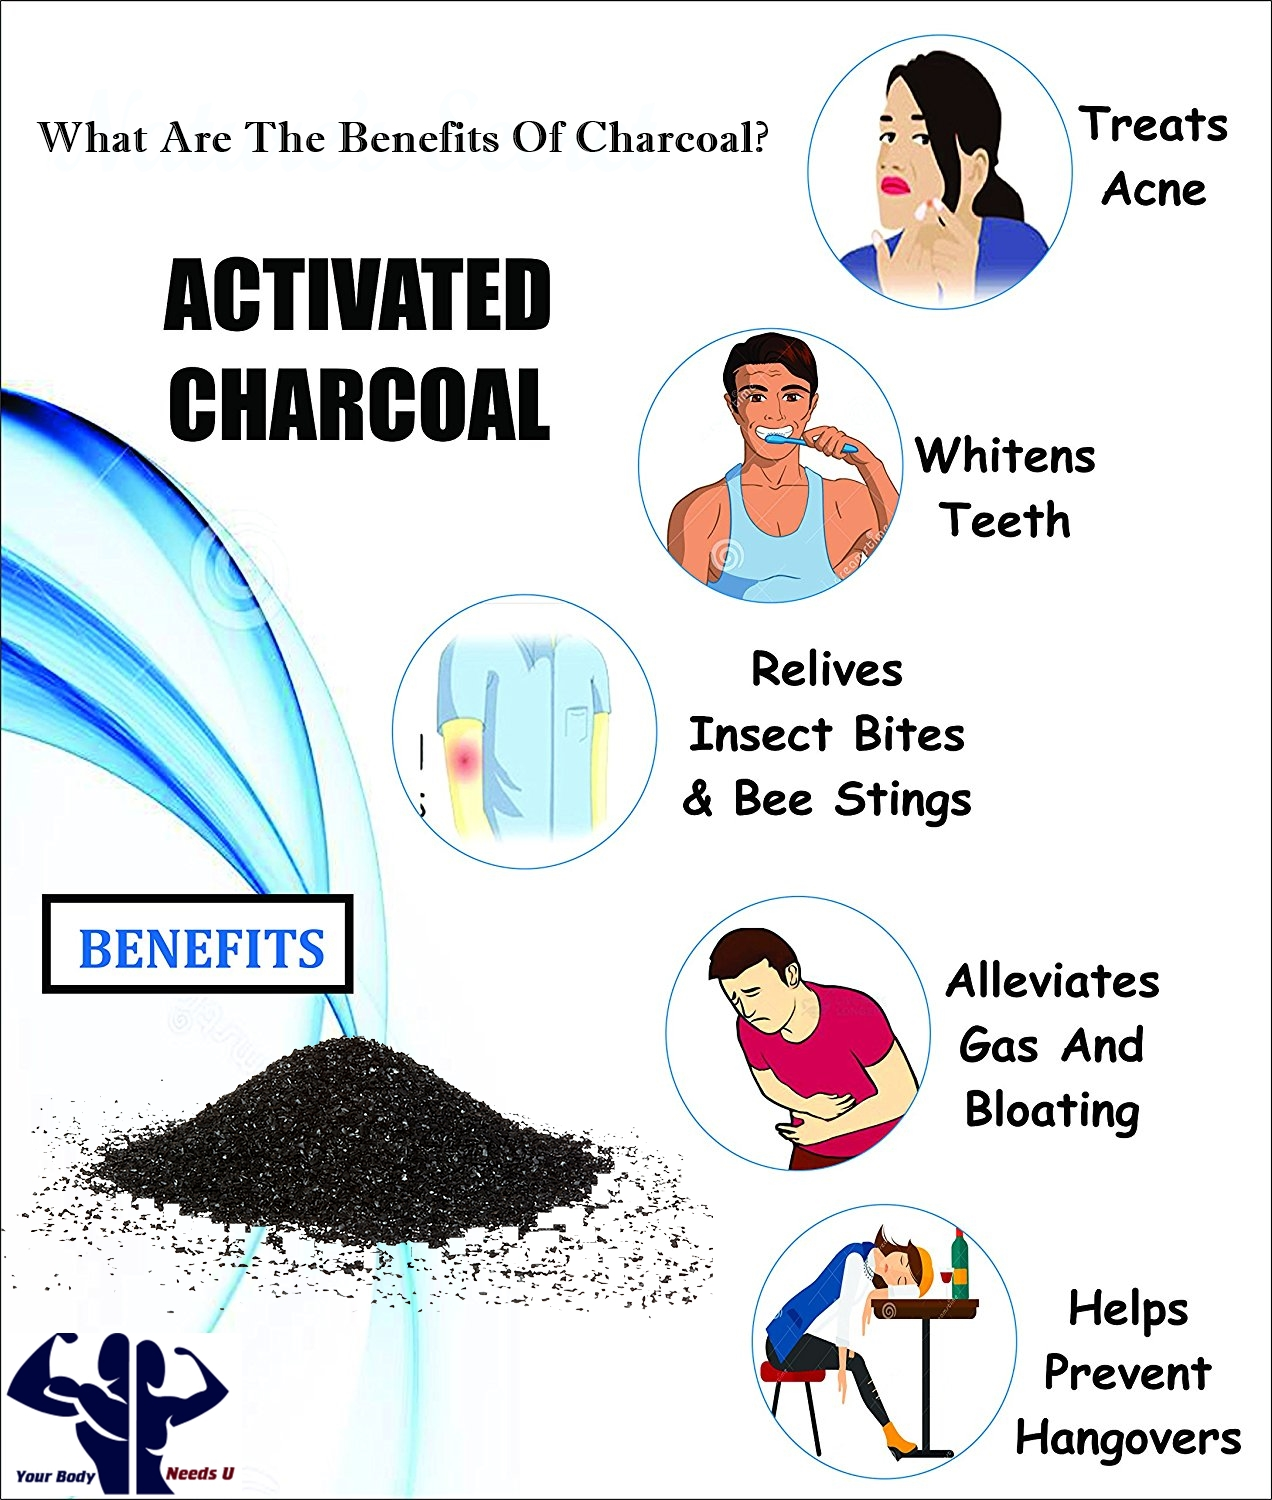 Magical Benefits Of Charcoal For Skin: Activated Charcoal Uses, What Are The Benefits Of Charcoal?